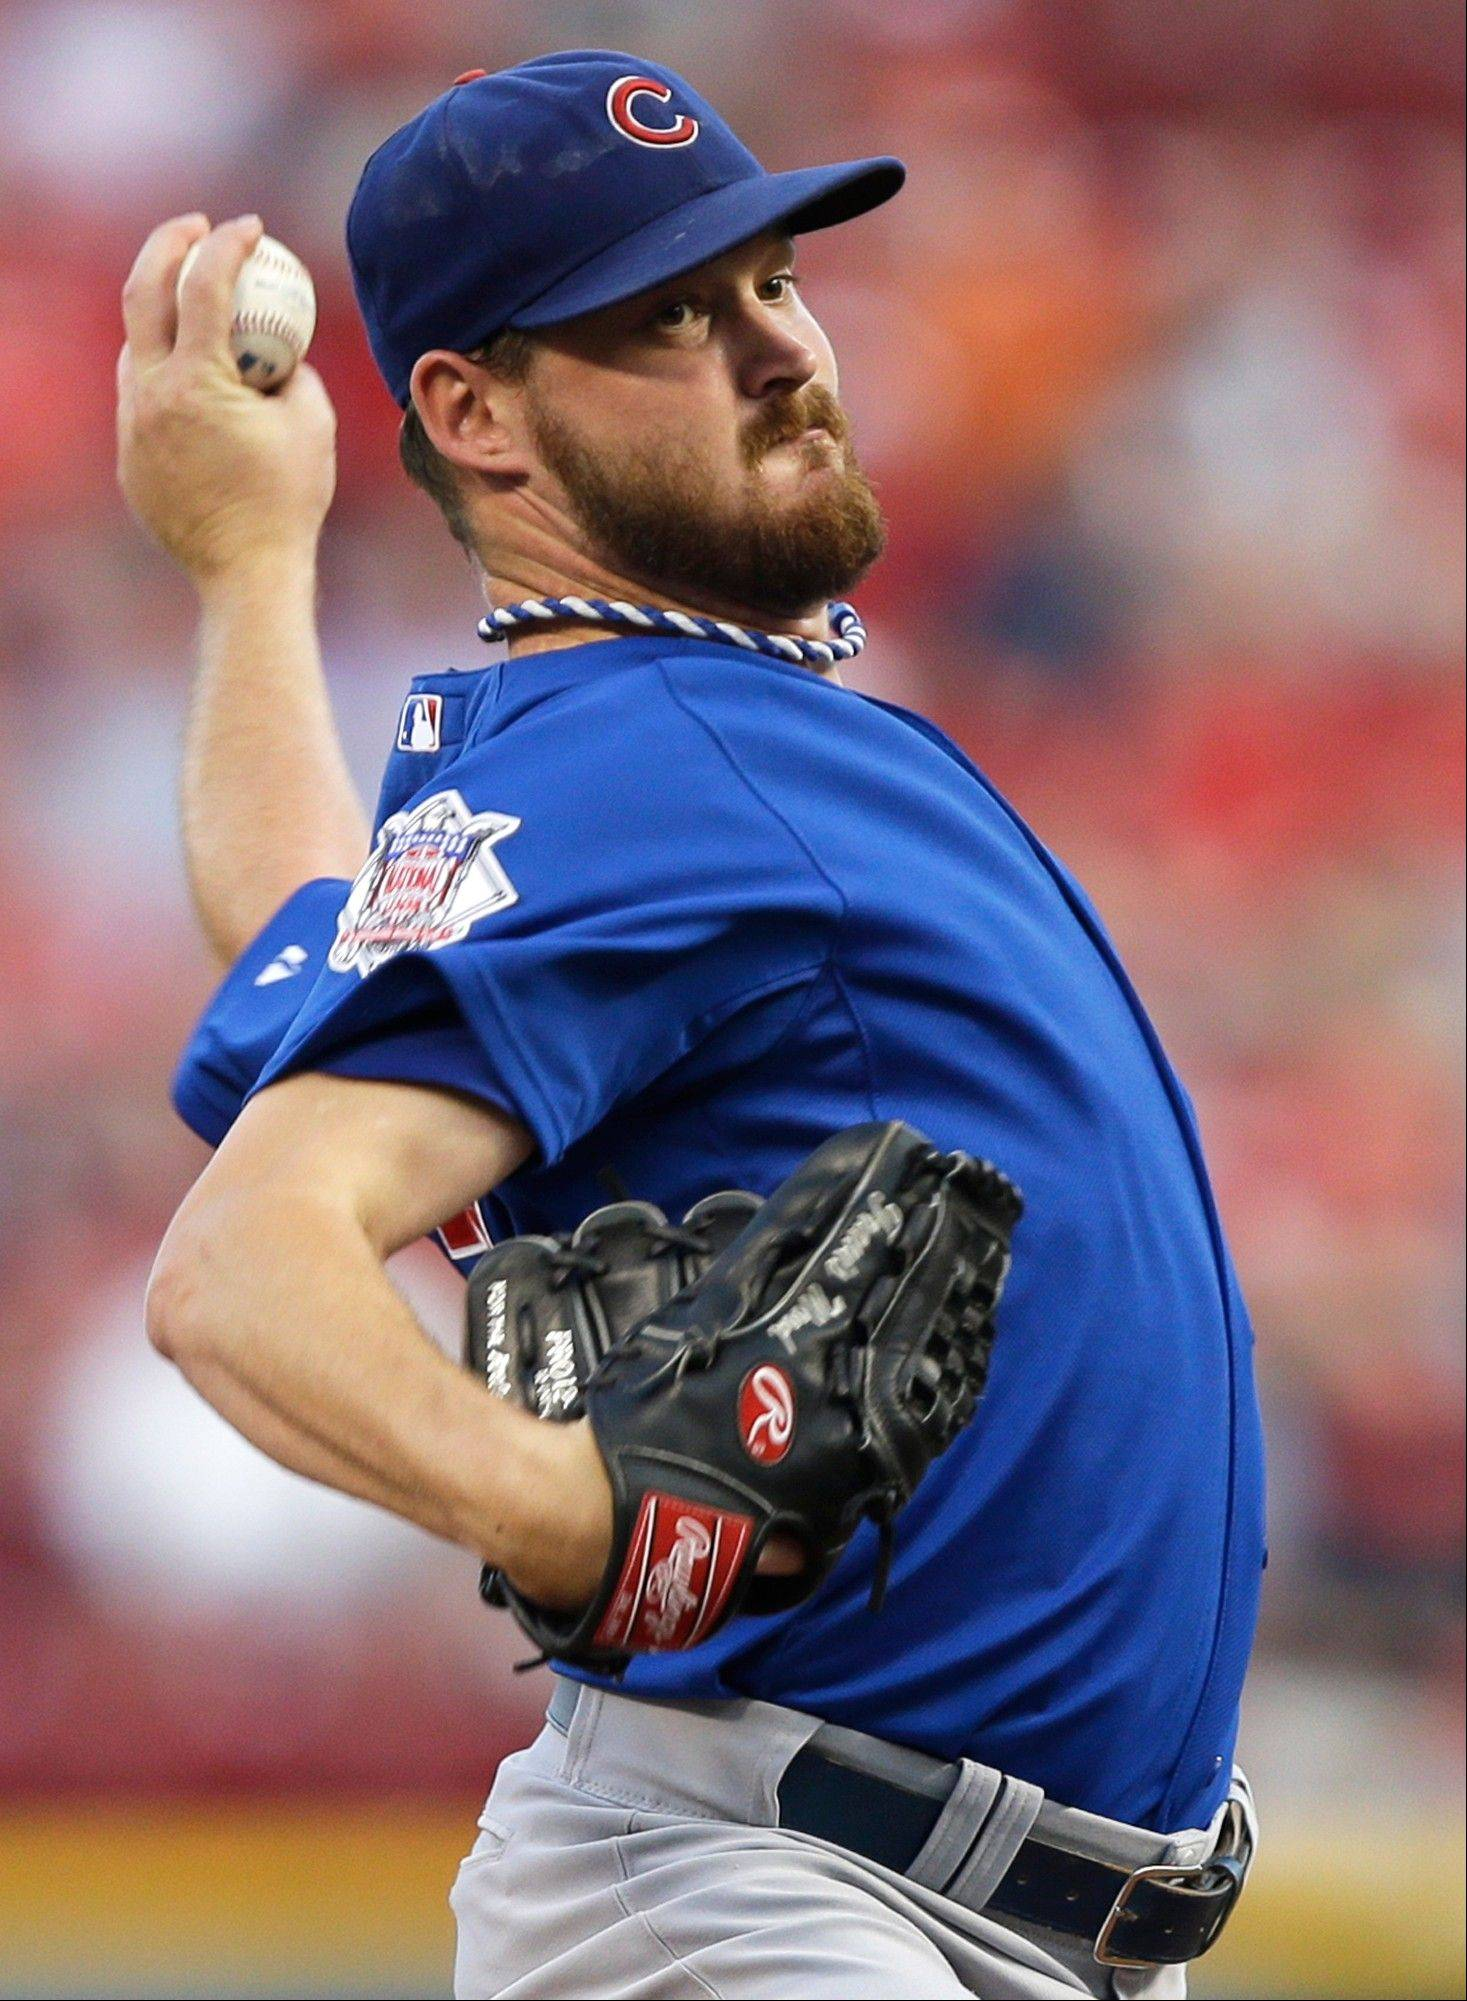 Cubs starting pitcher Travis Wood throws against the Reds in the first inning Monday in Cincinnati.